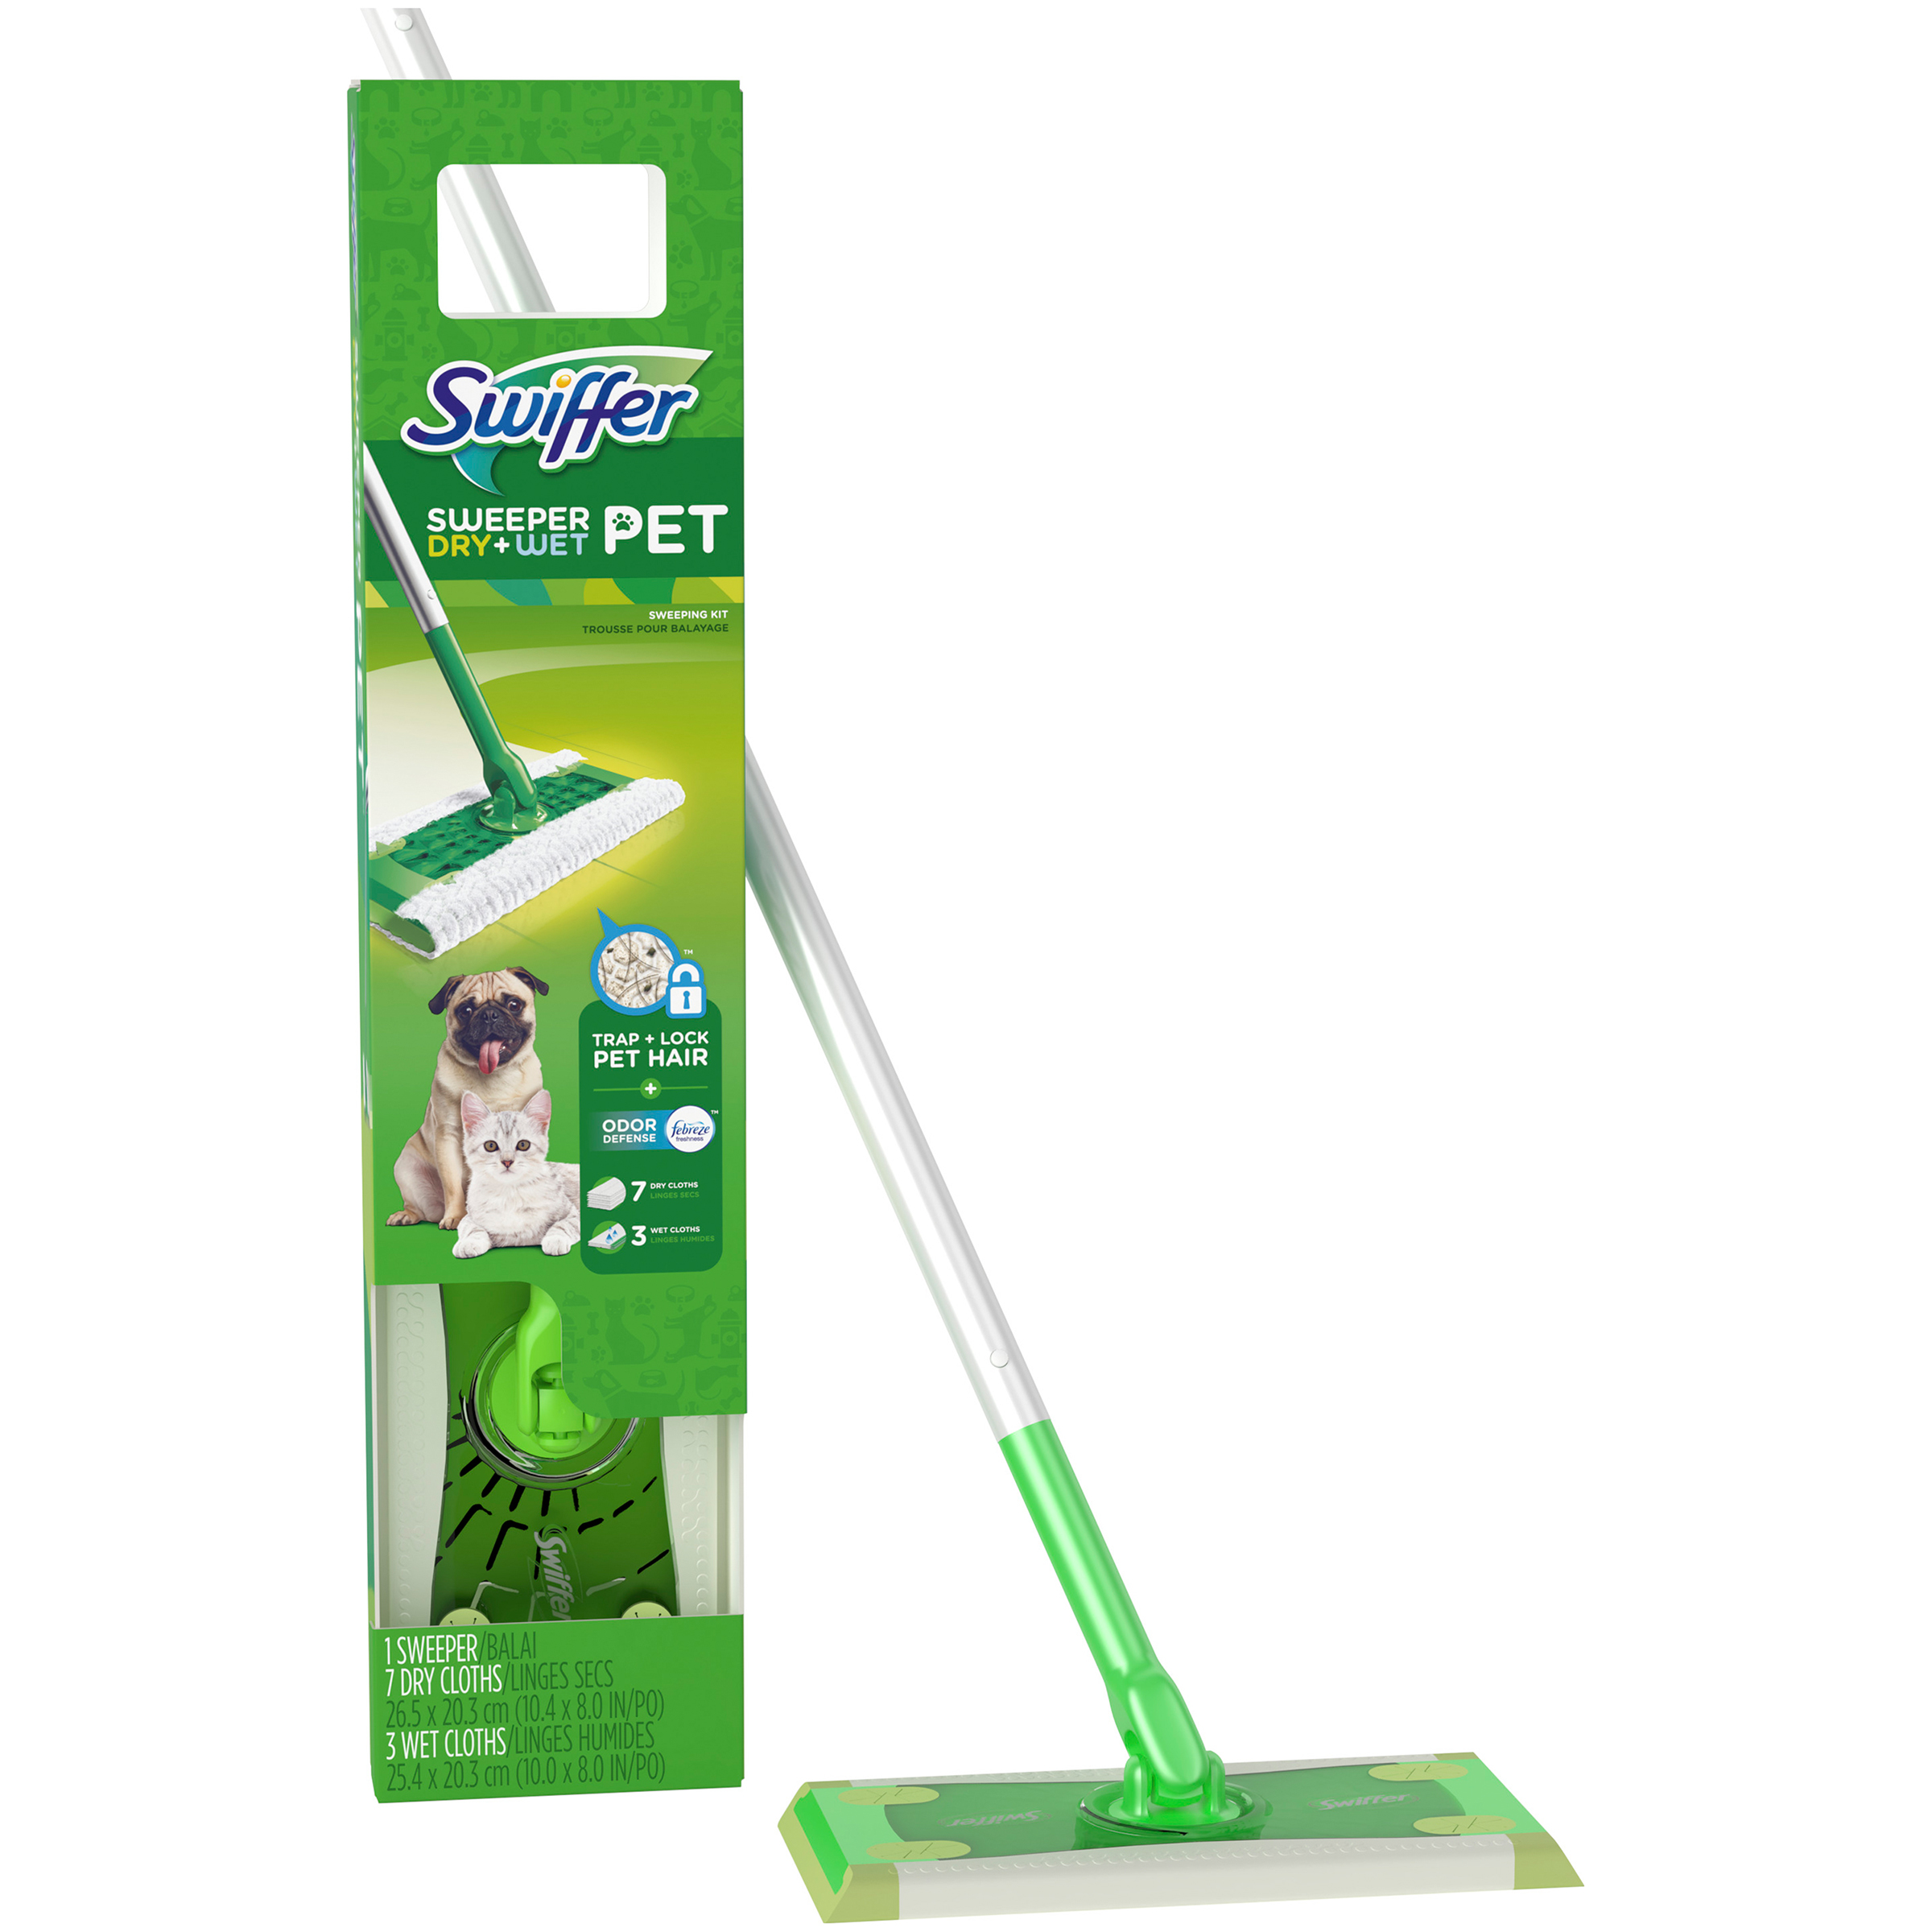 Swiffer® Sweeper Pet Dry + Wet Sweeping Kit (1 Sweeper, 7 Dry Cloths, 3 Wet Cloths)